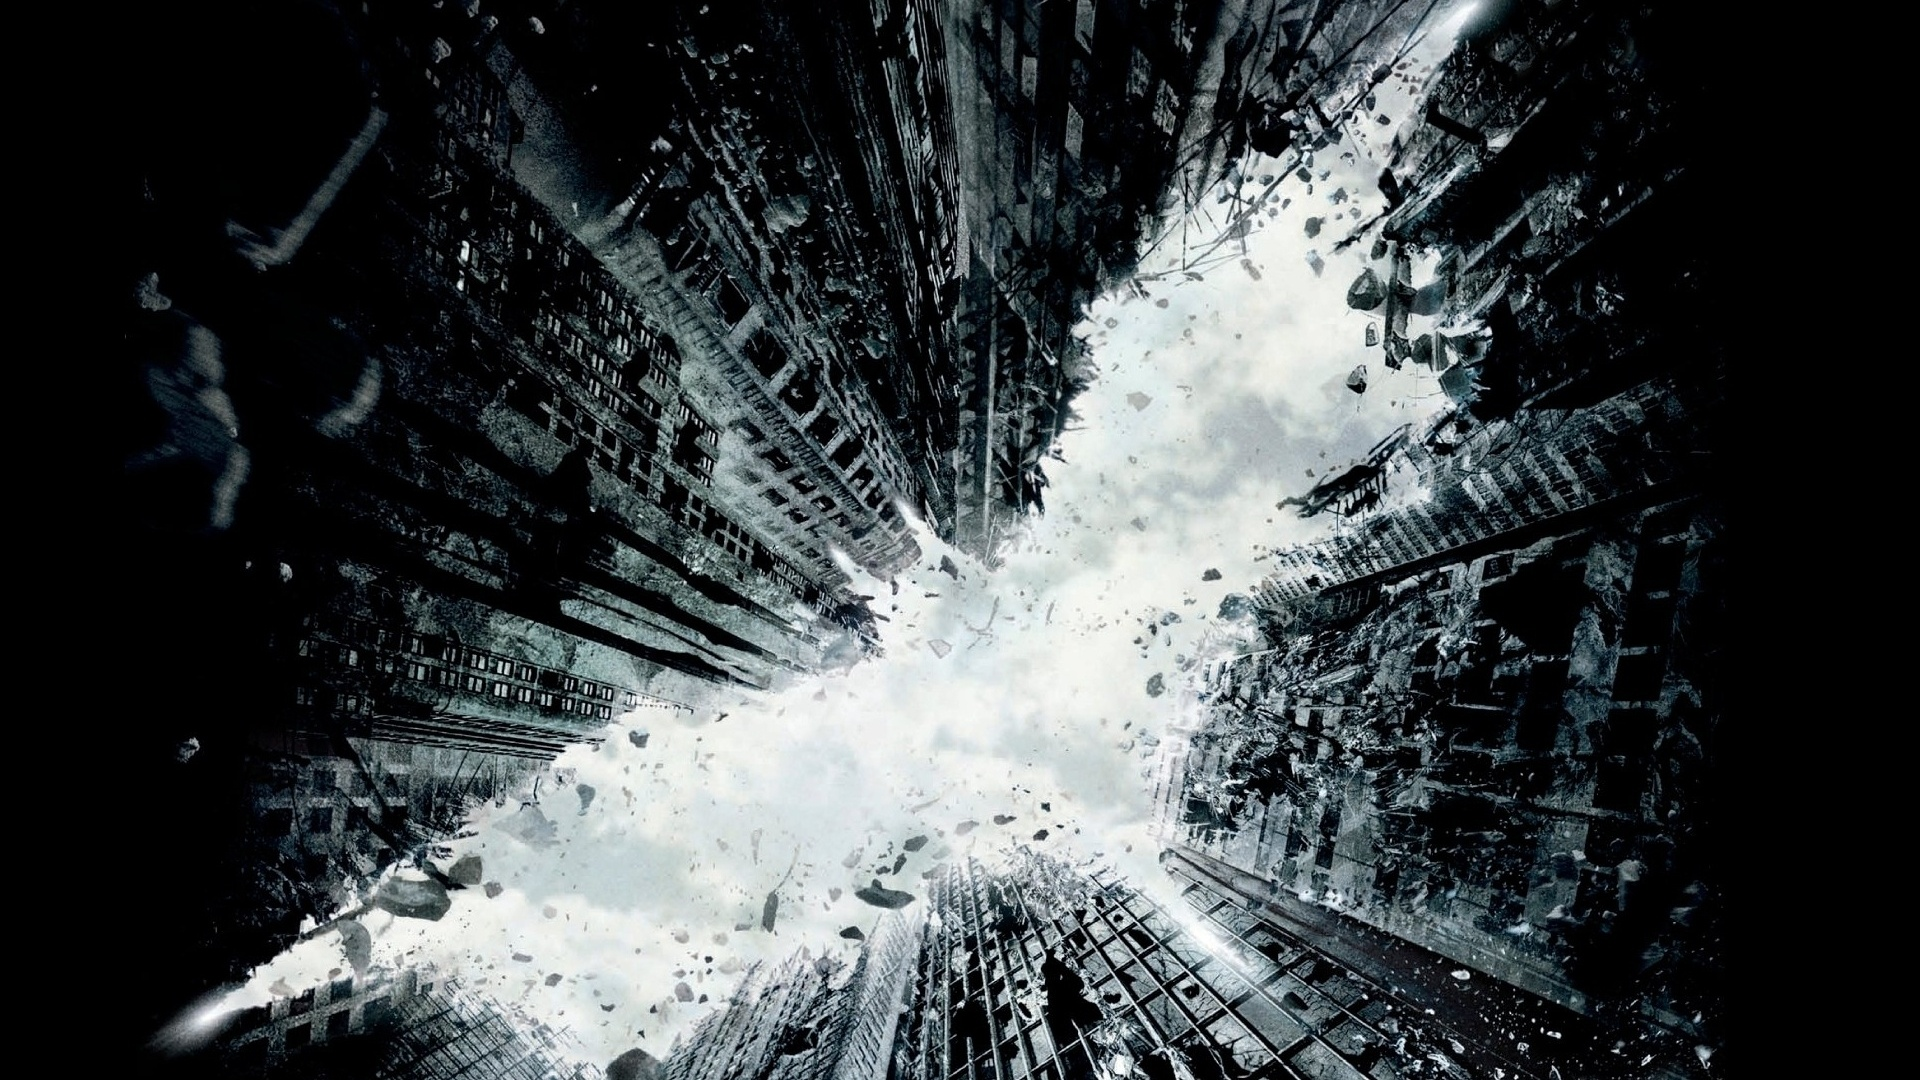 Dark Knight Rises Wallpaper Windows Mode